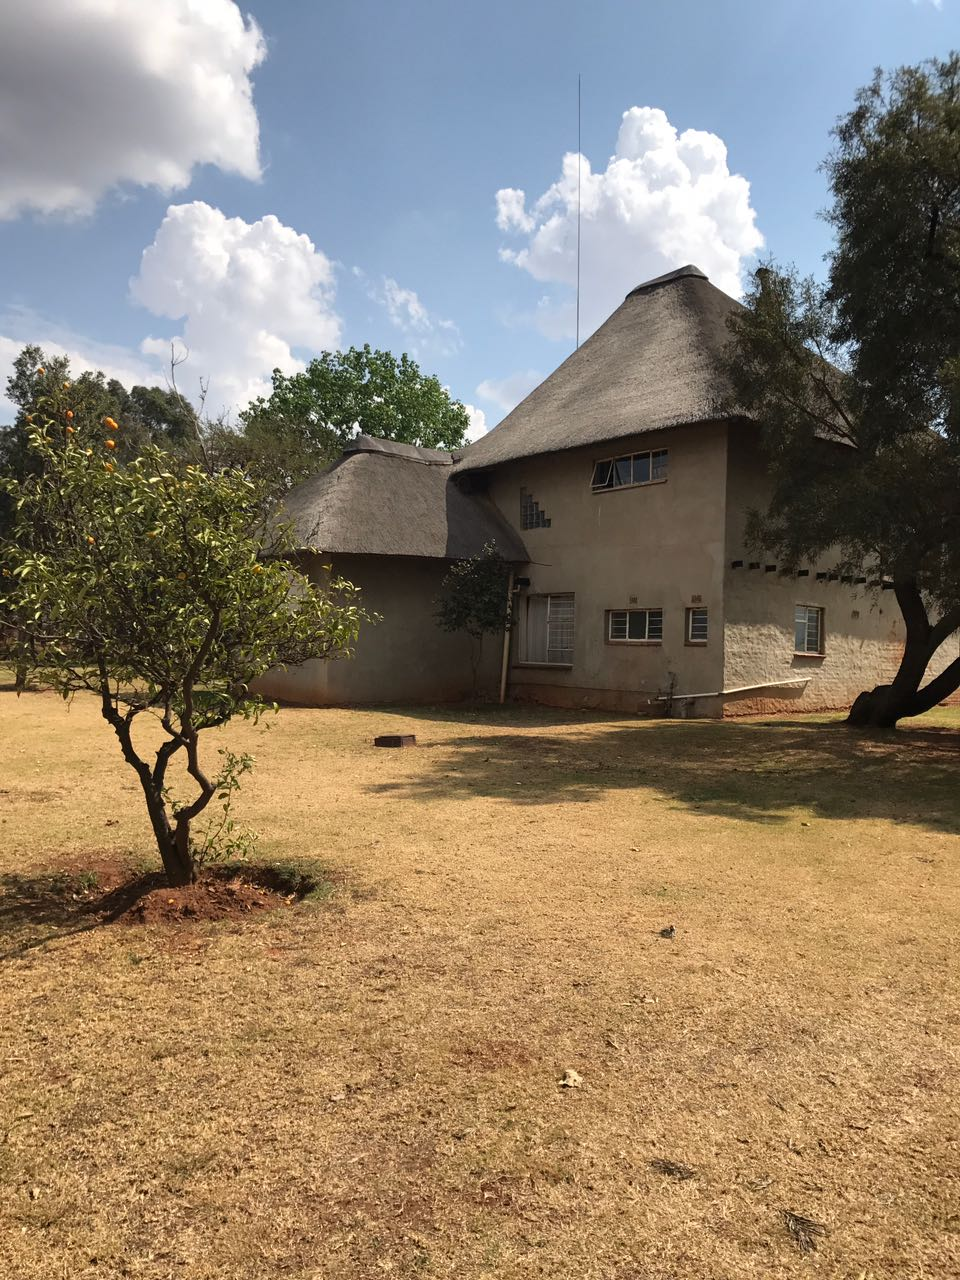 22ha in Cradle of Humankind